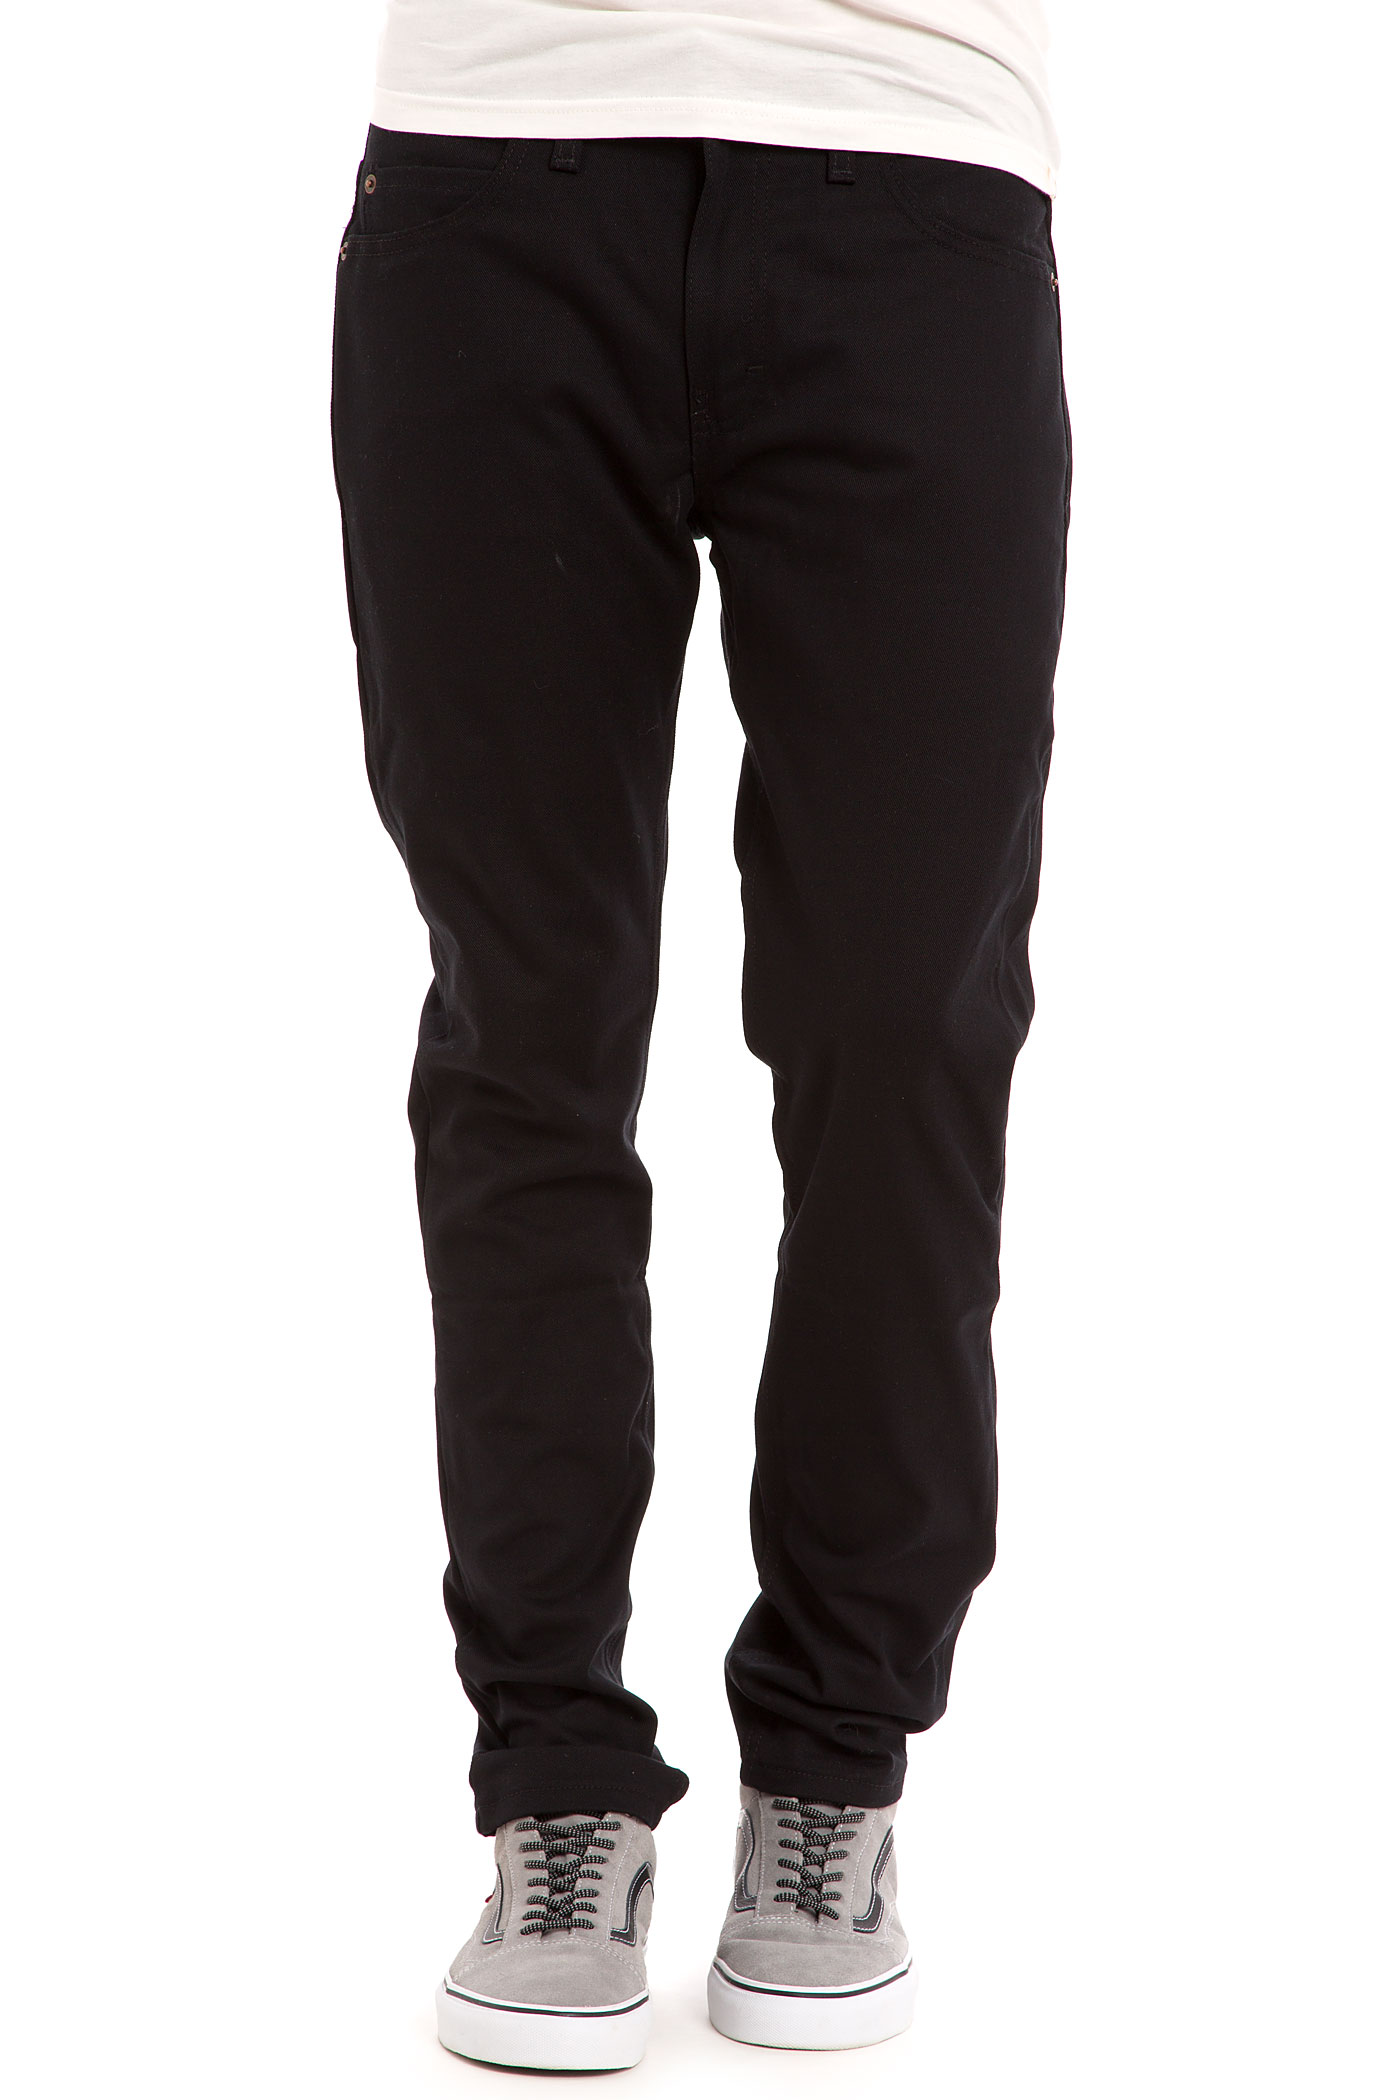 newcondition dickies dickies slim skinny pants black 4 8 12 5 1: https://www.skatedeluxe.ch/en/dickies-slim-skinny-pants-black_p56191